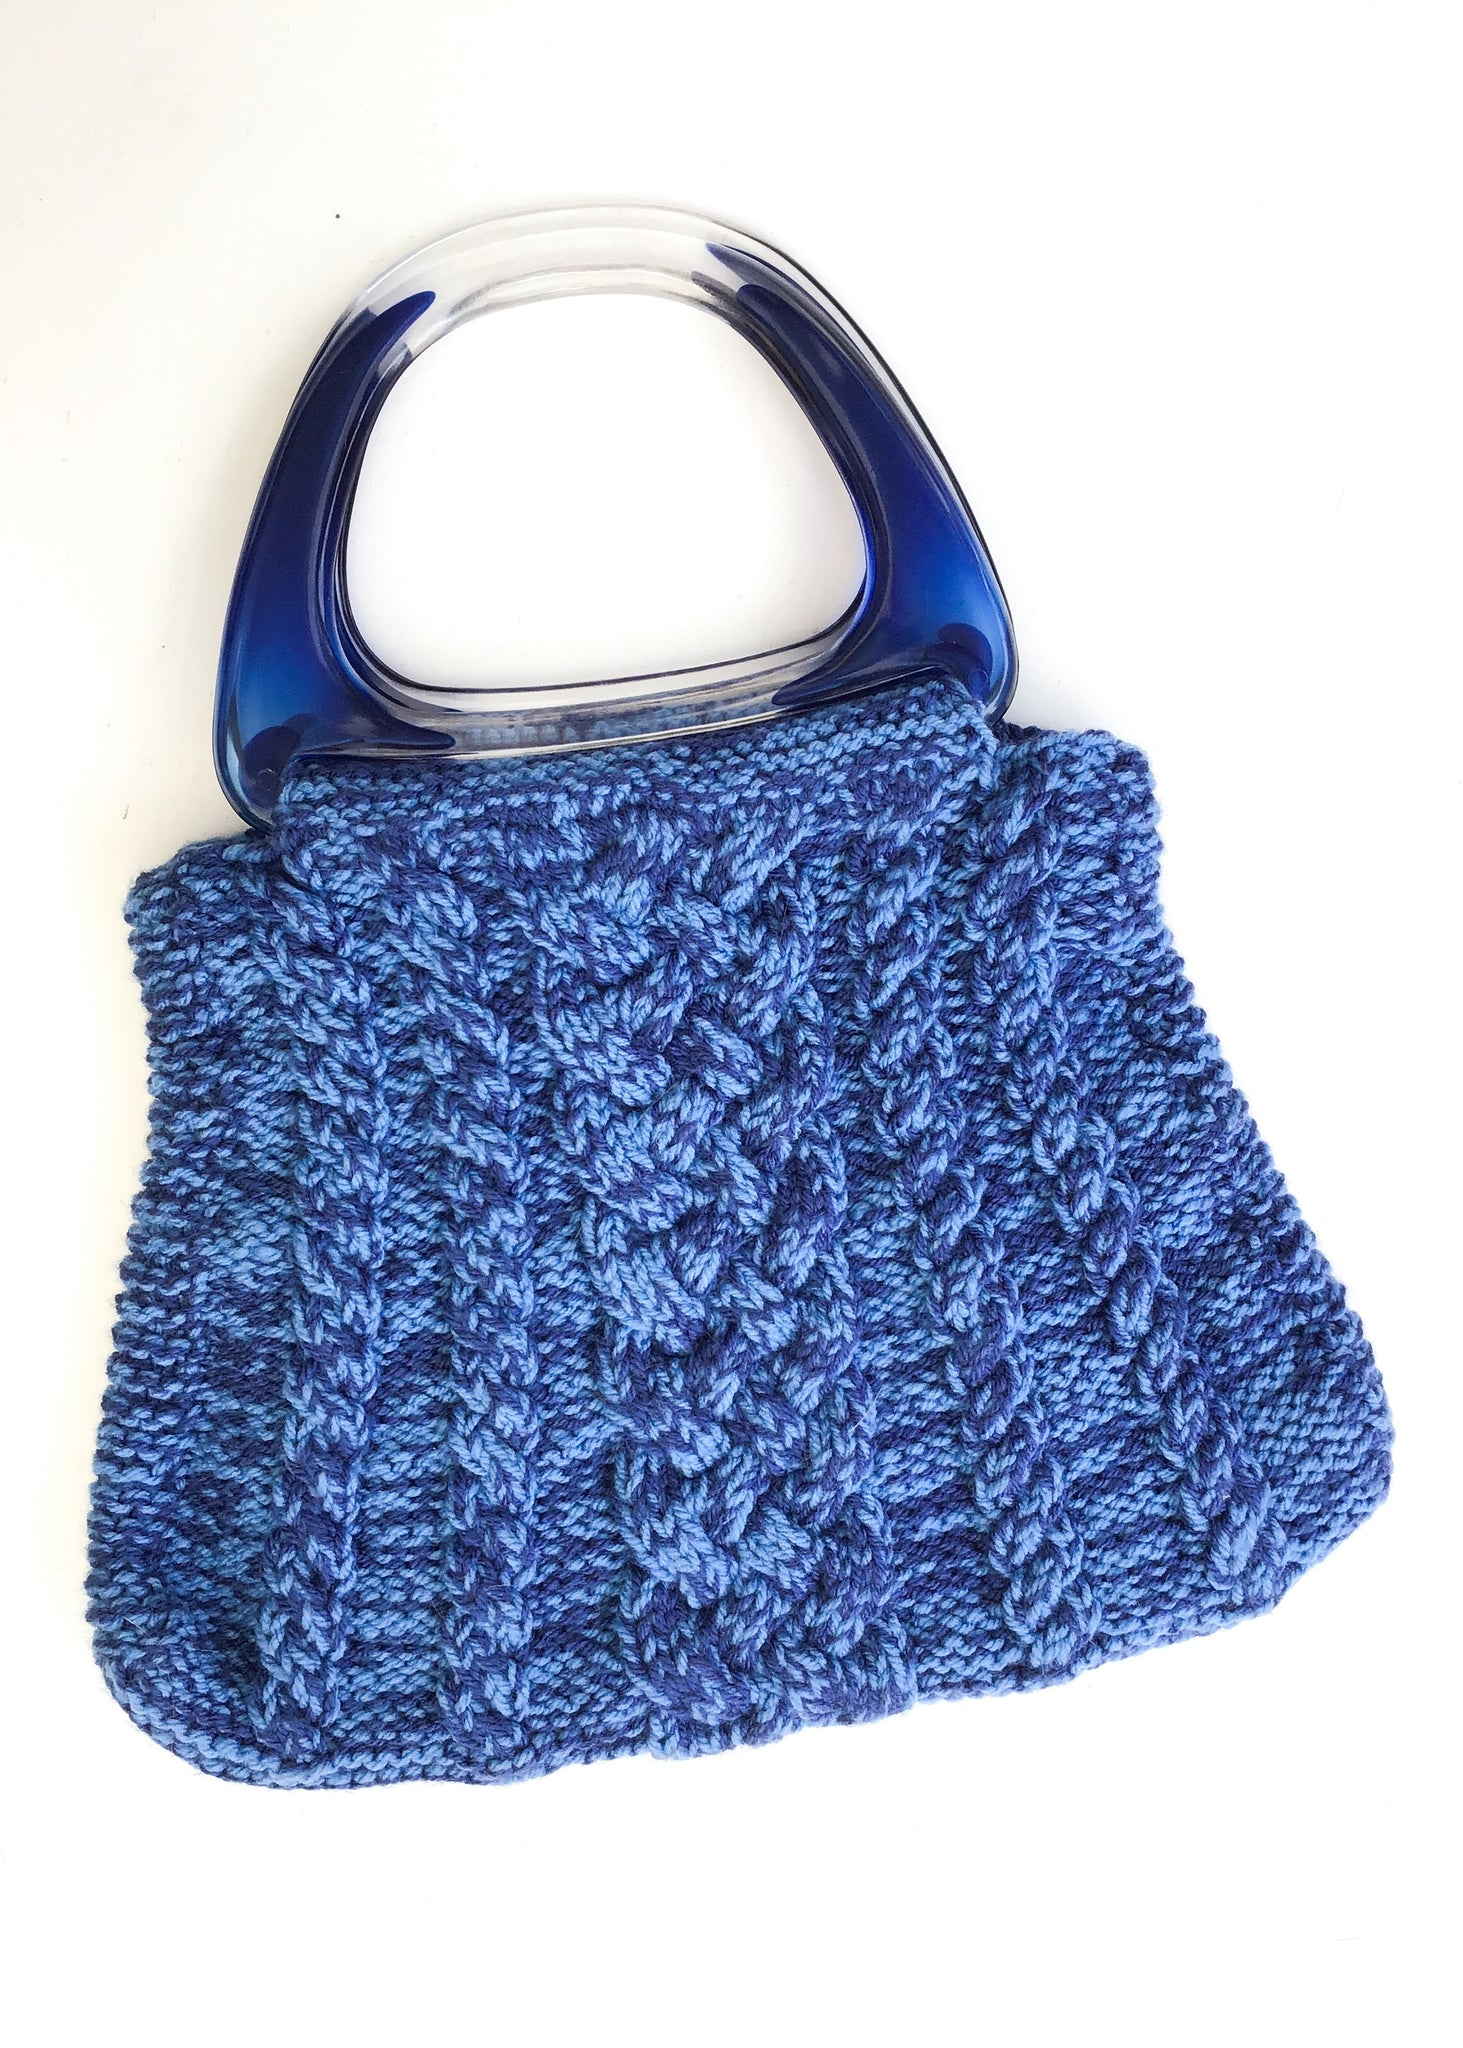 Buy Hand knitted knitting vintage work bag with blue lucite handles